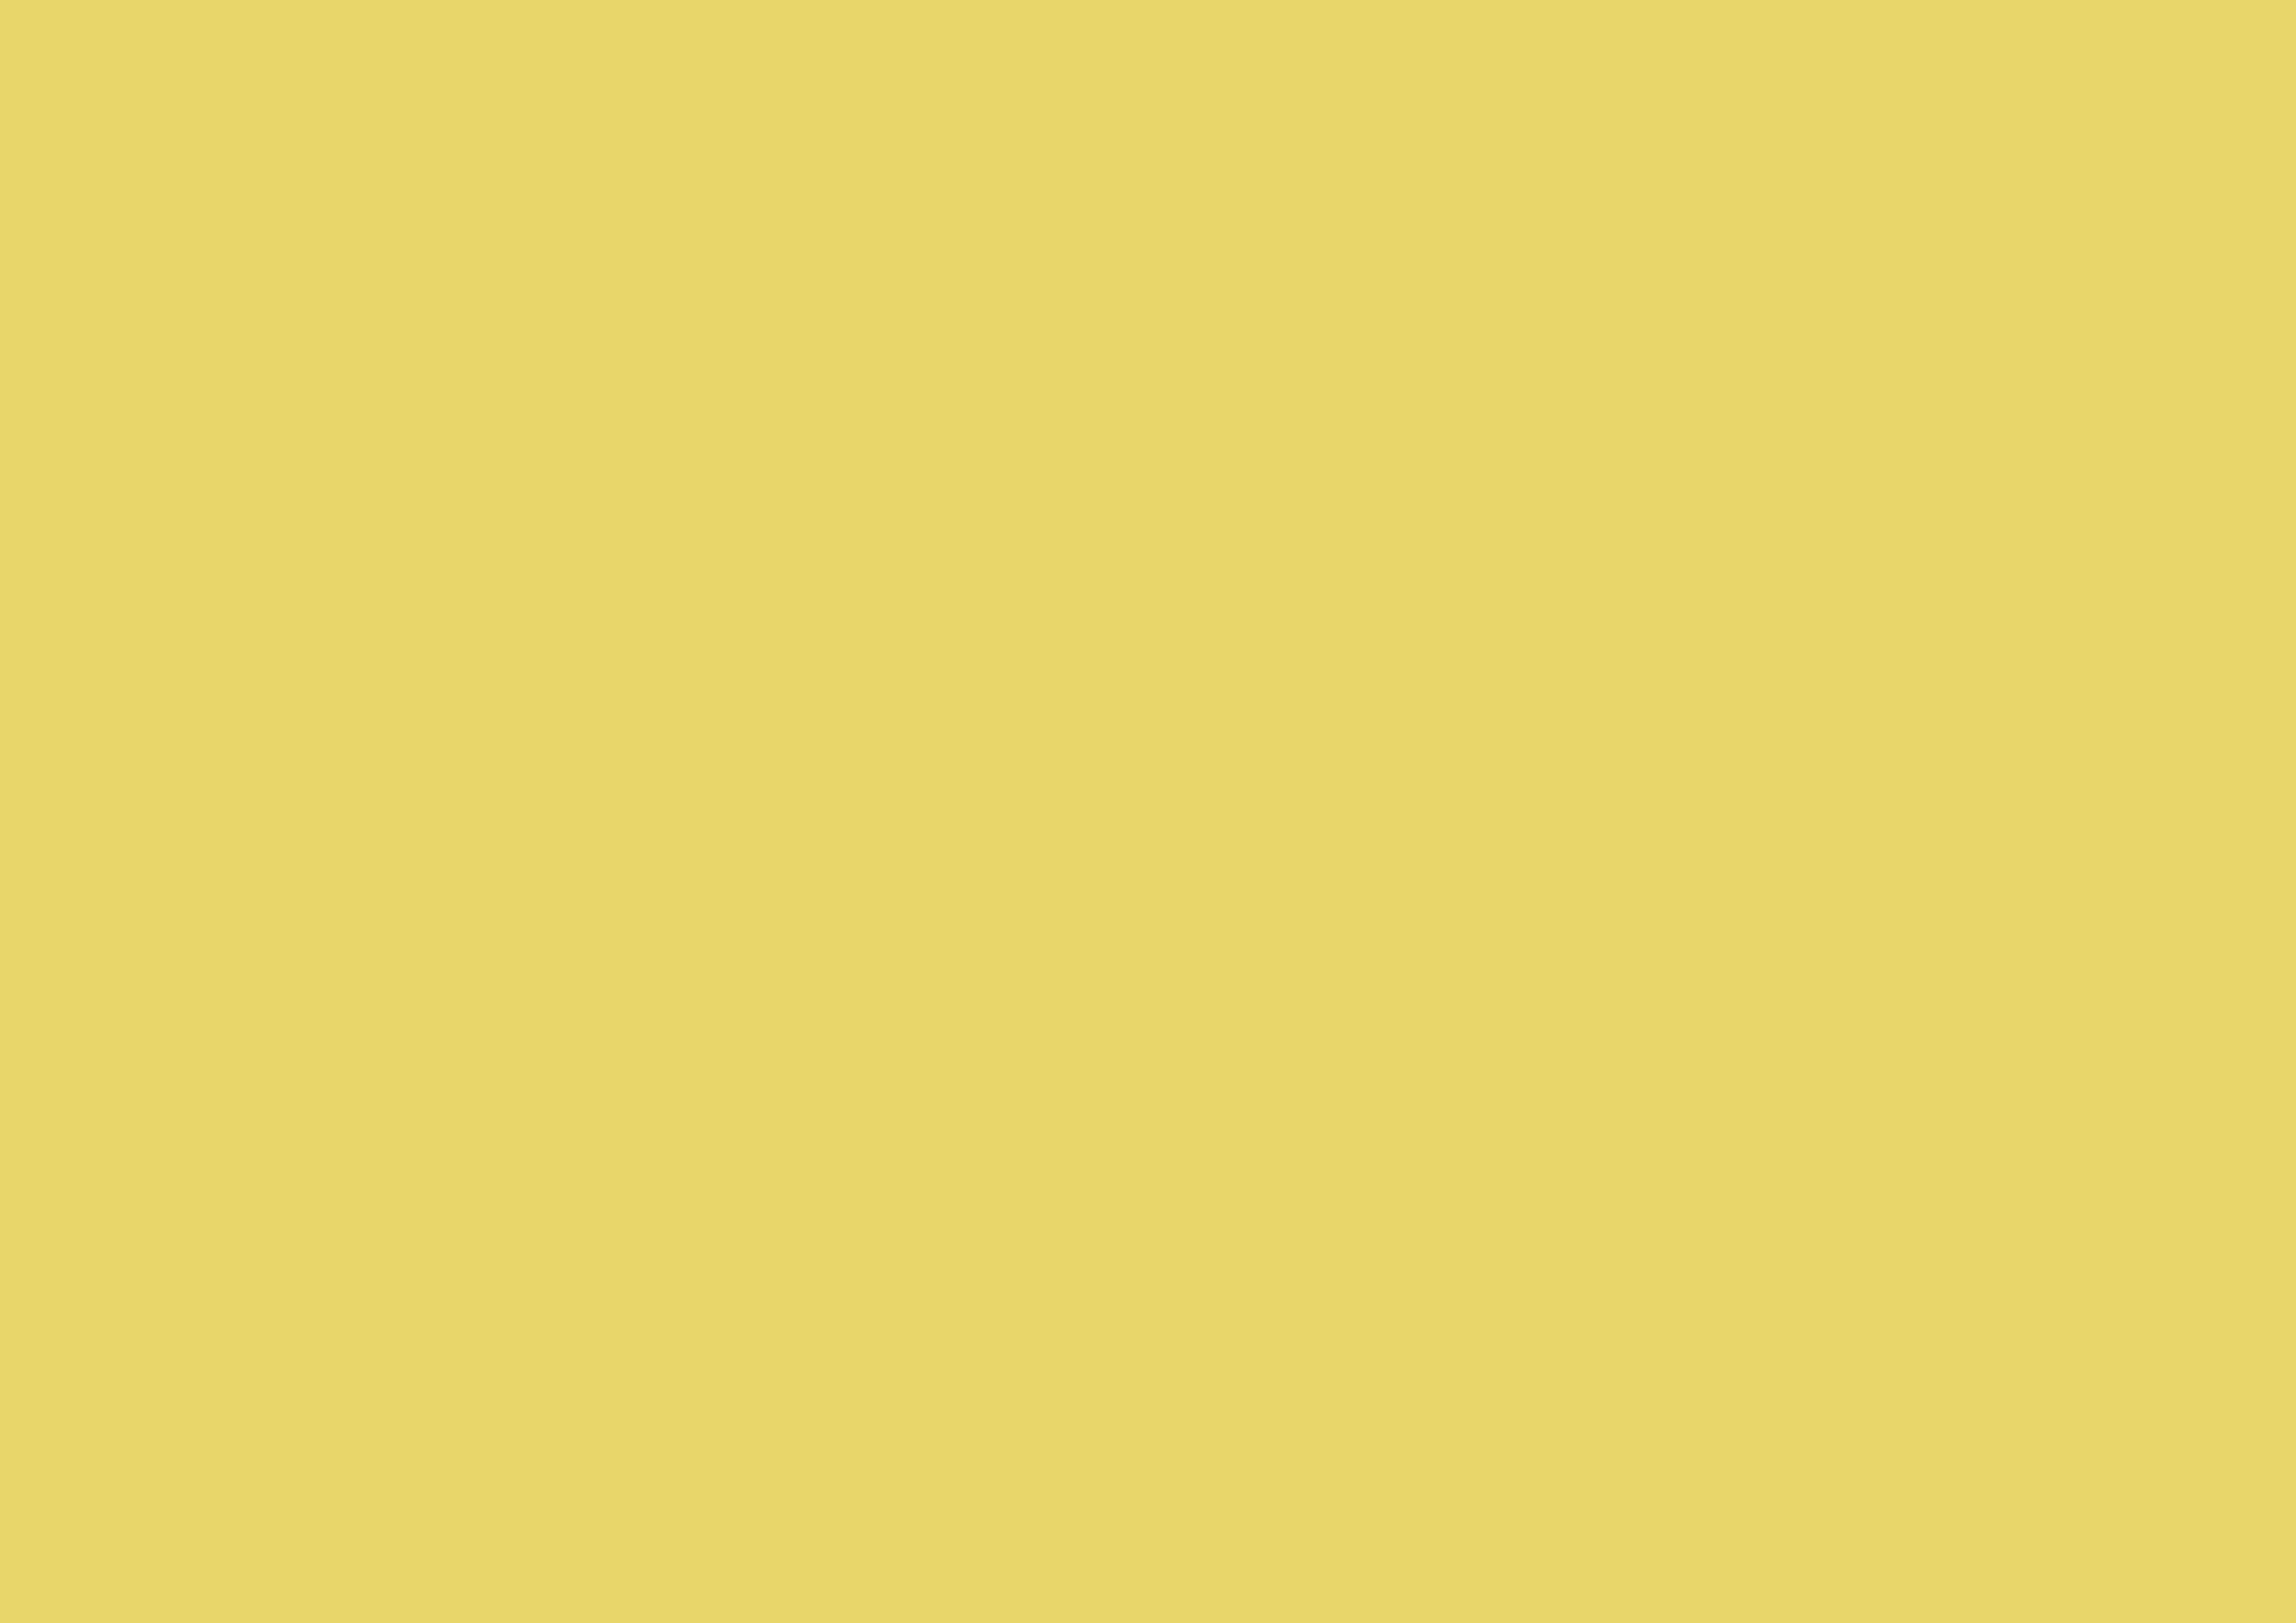 3508x2480 Hansa Yellow Solid Color Background